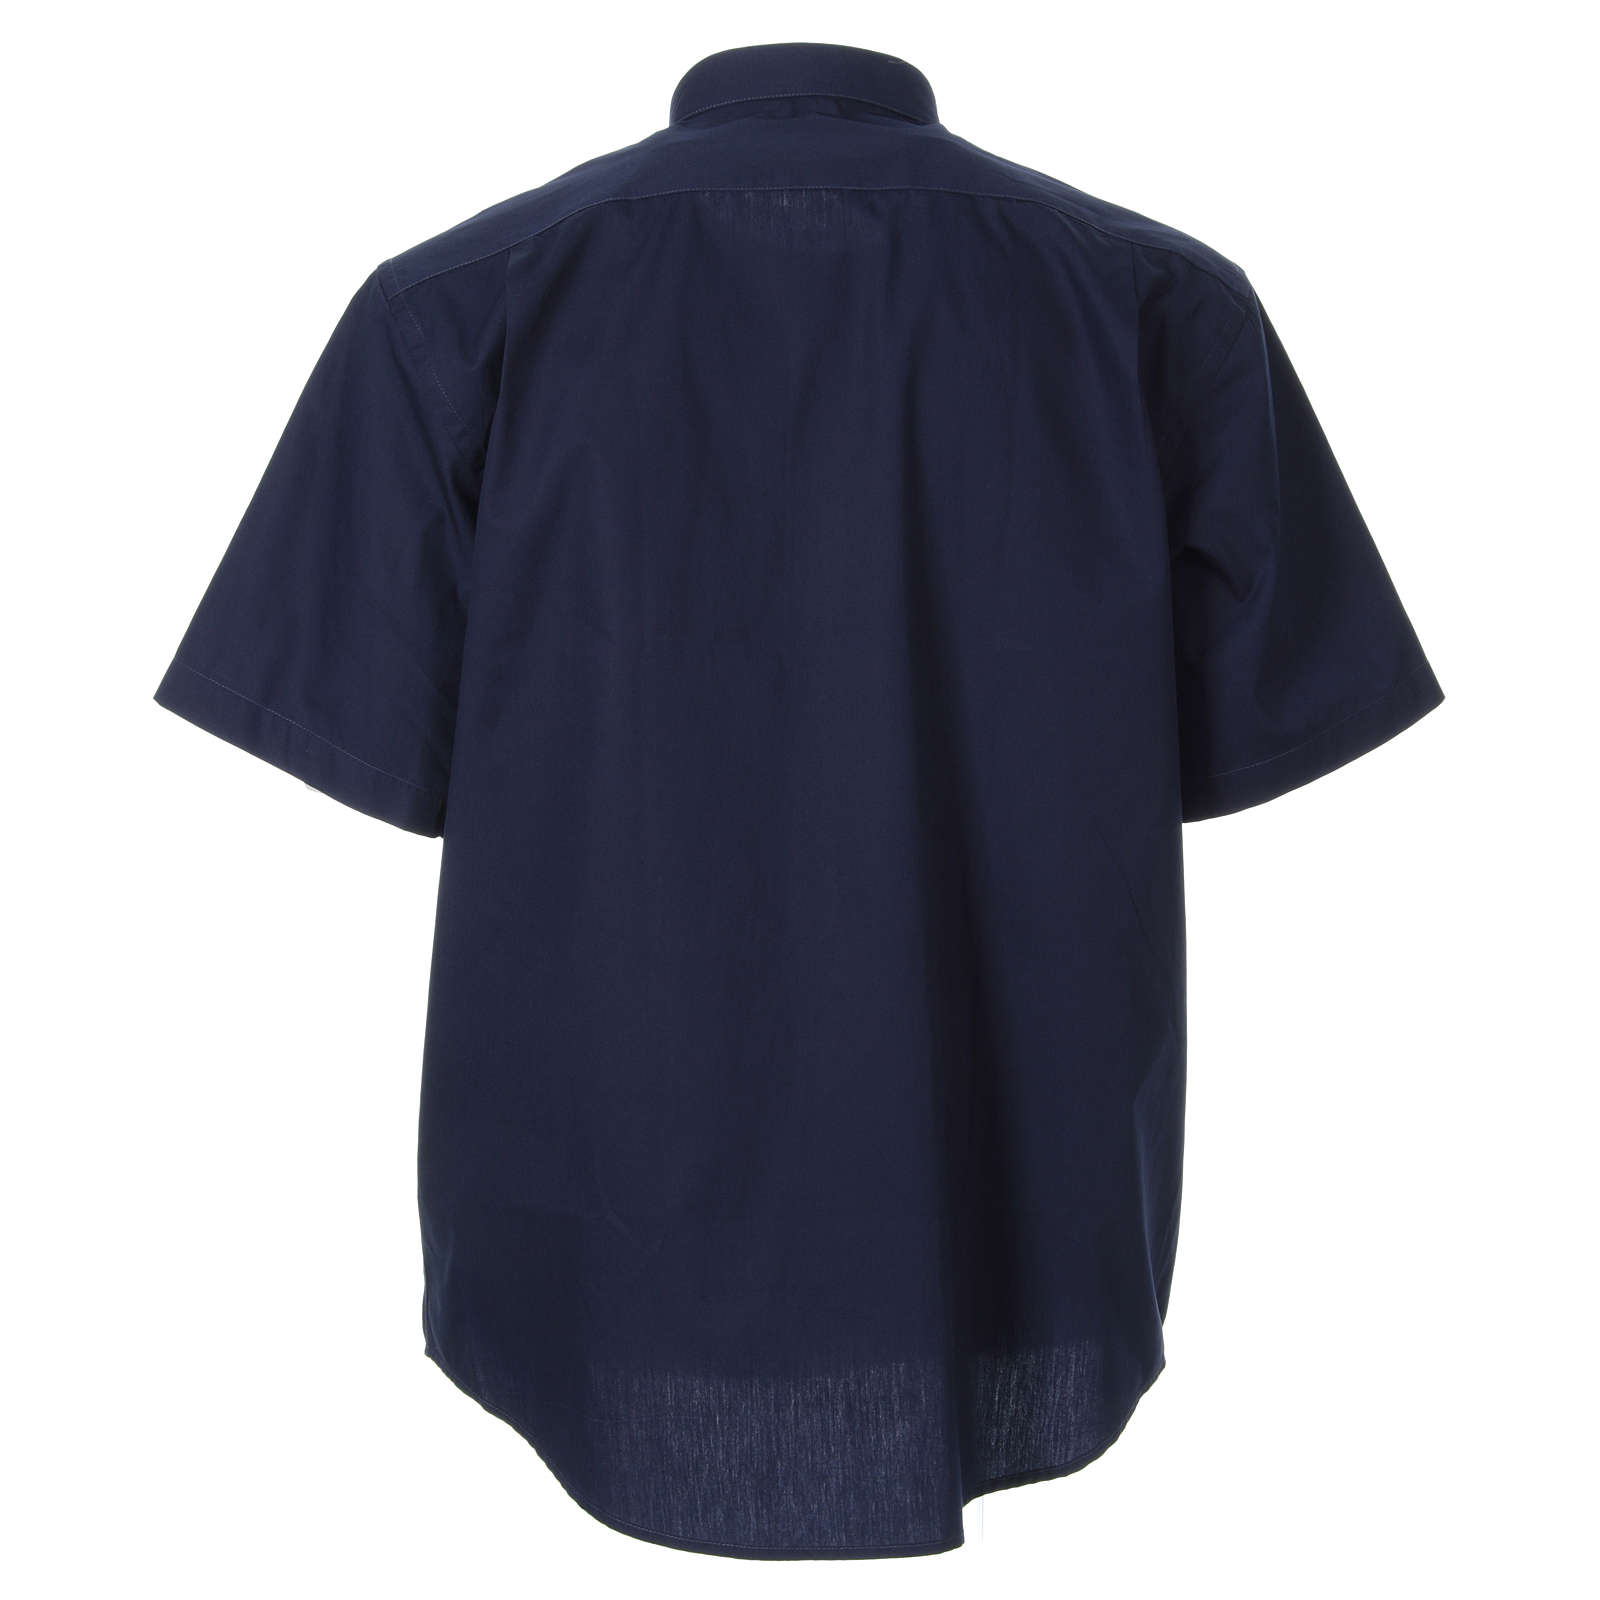 STOCK clergyman shirt with short sleeves in blue poplin 4